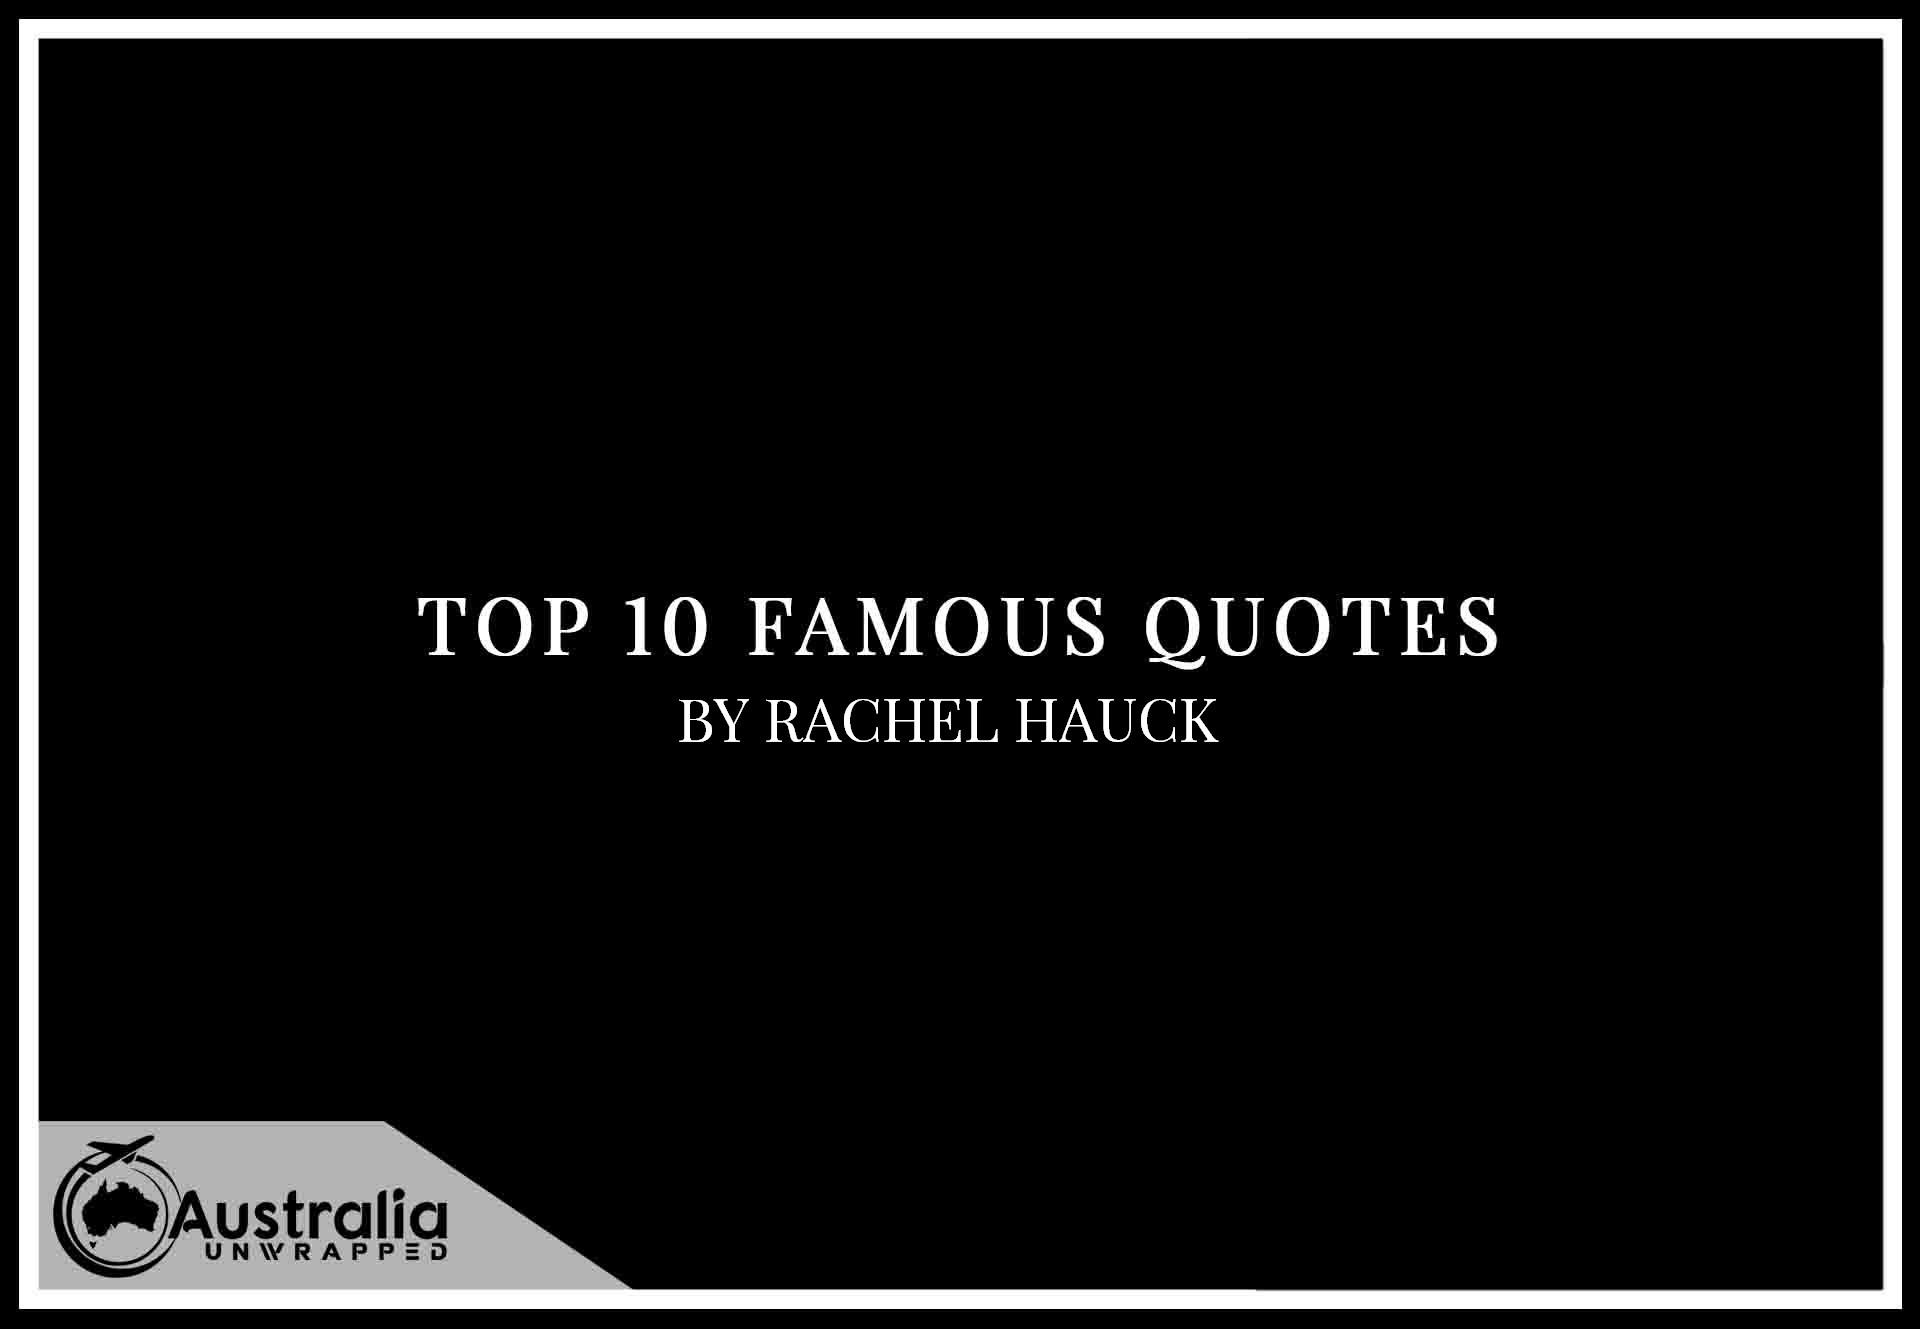 Top 10 Famous Quotes by Author Rachel Hauck